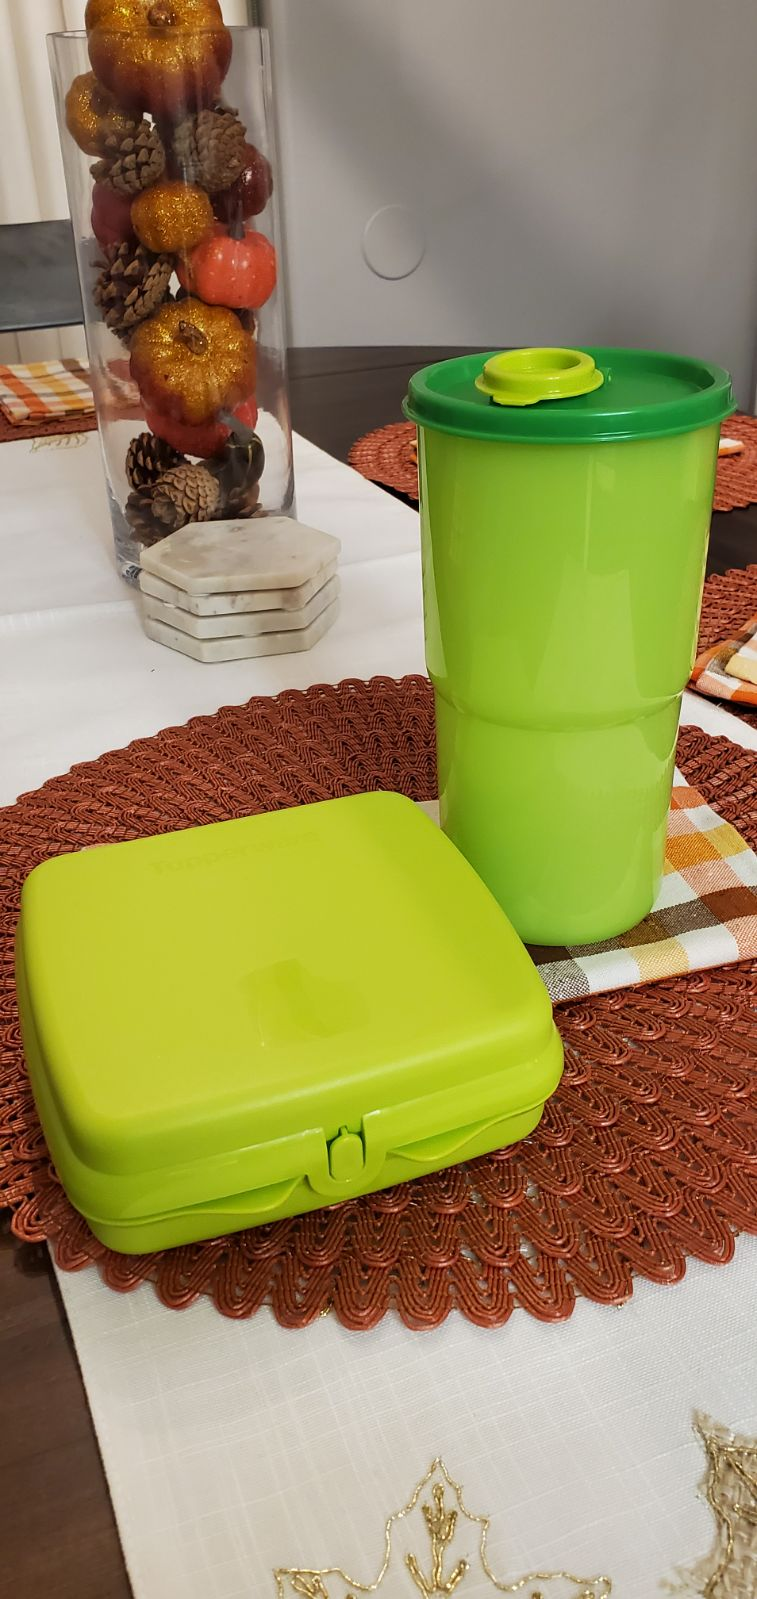 Tupperware green lunch set with tumbler